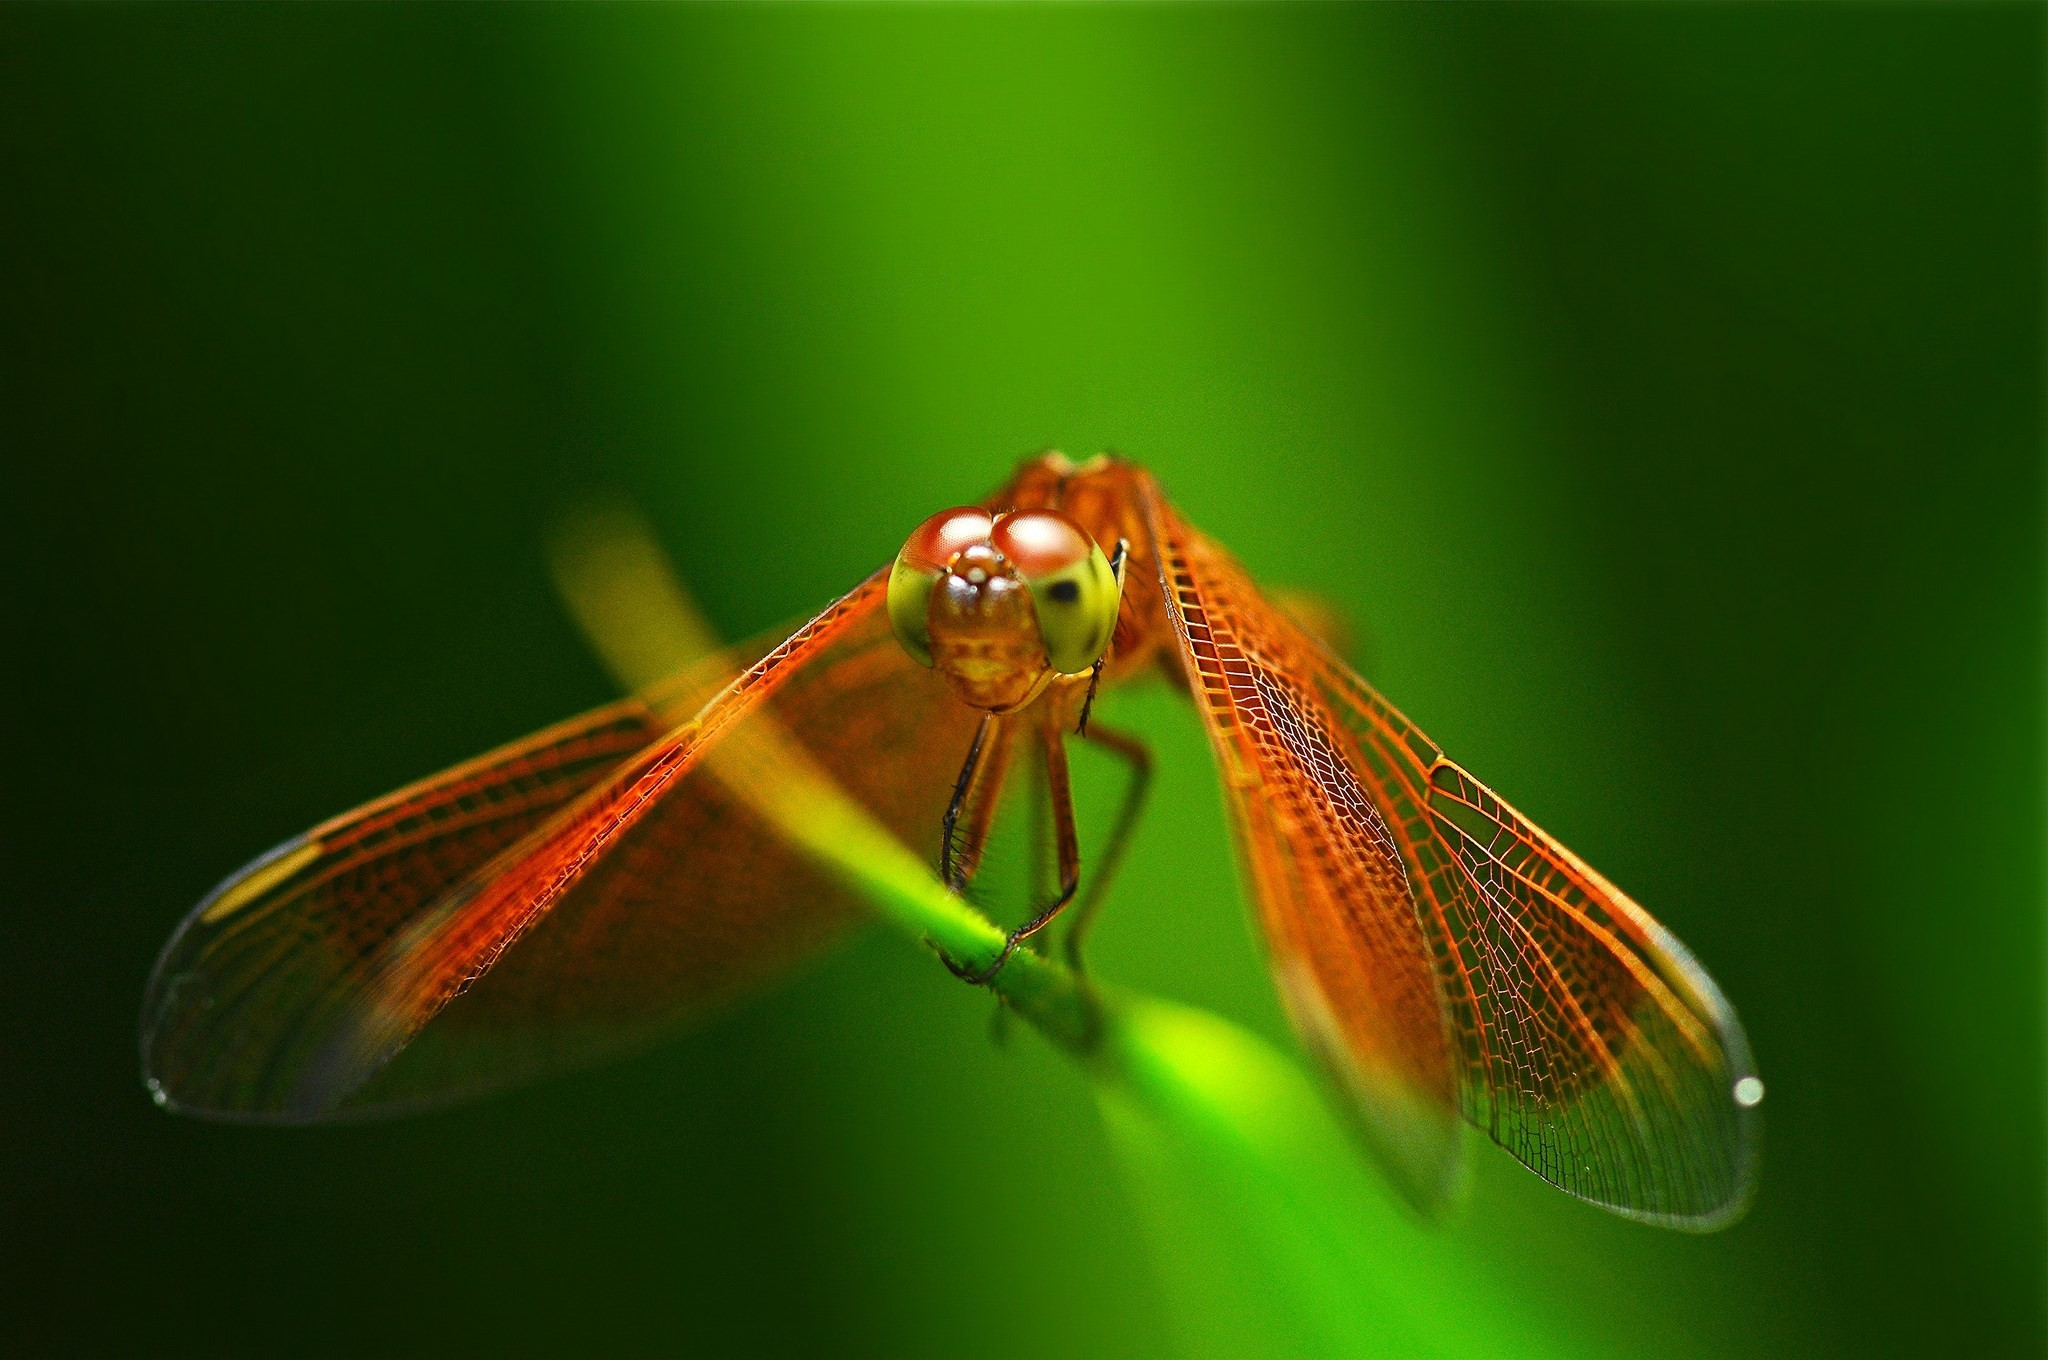 free screensaver wallpapers for dragonfly